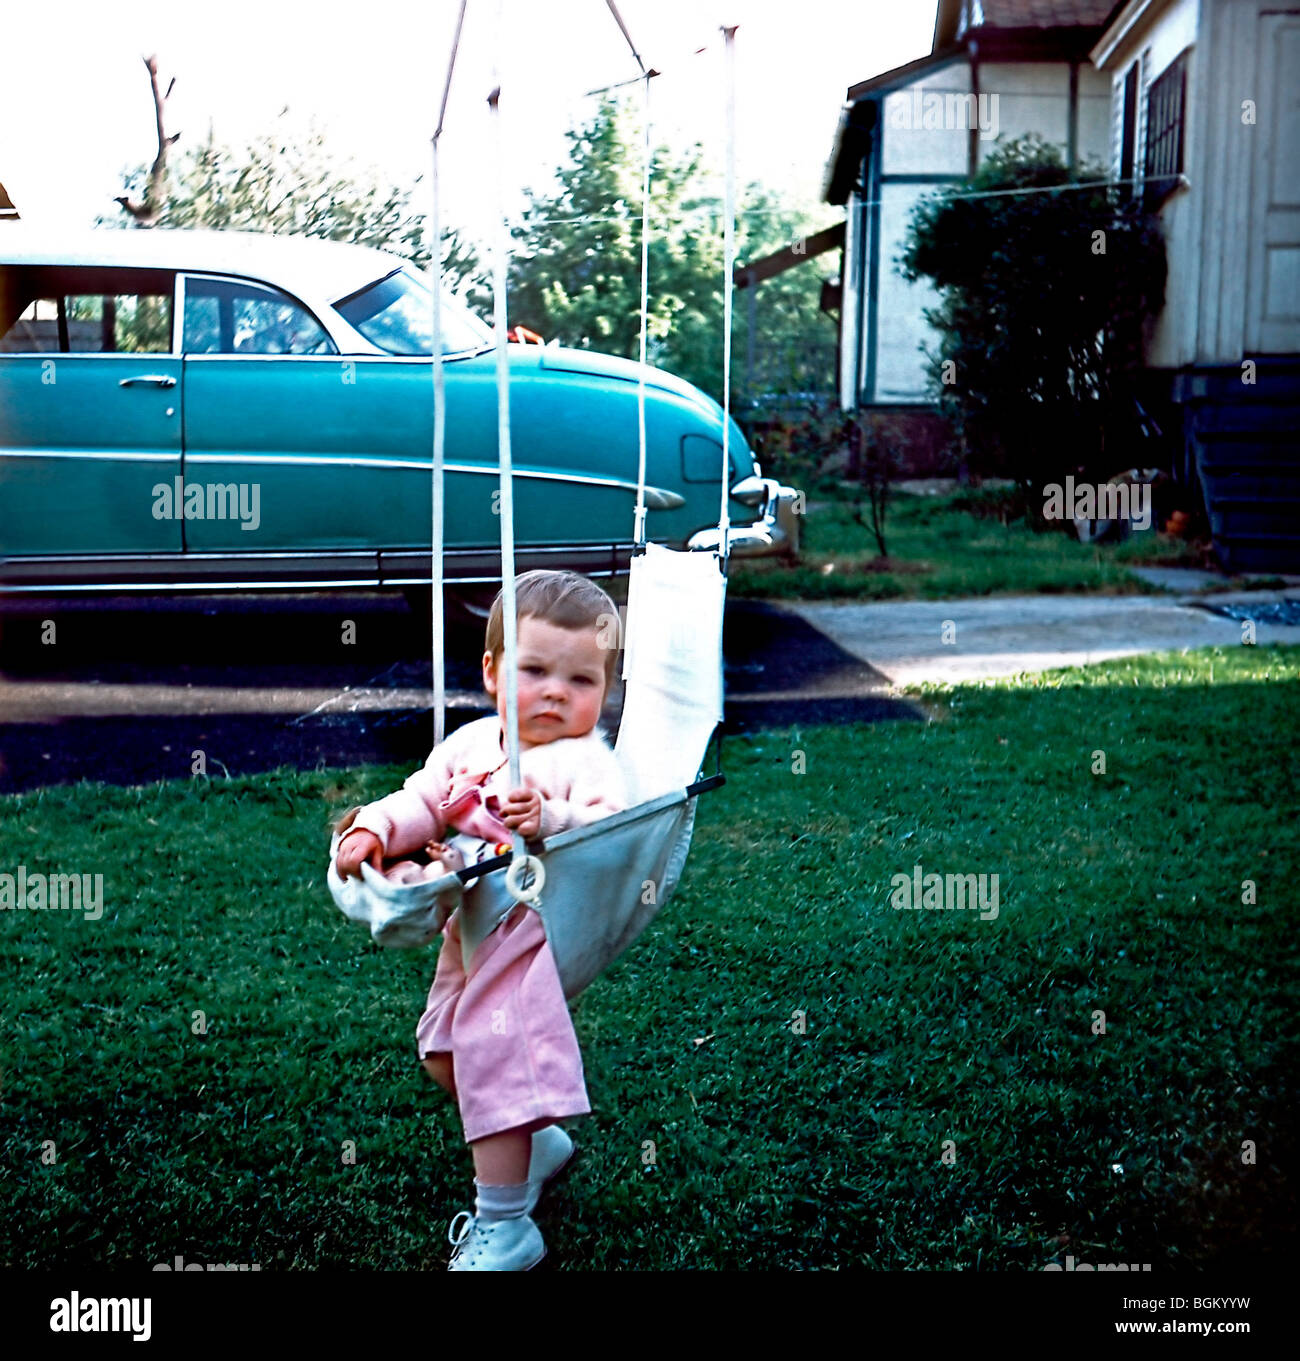 U.S.A., 1950's Family Photos, Young Girl Alone in Swing in Backyard. 'Old Family Photos' - Stock Image